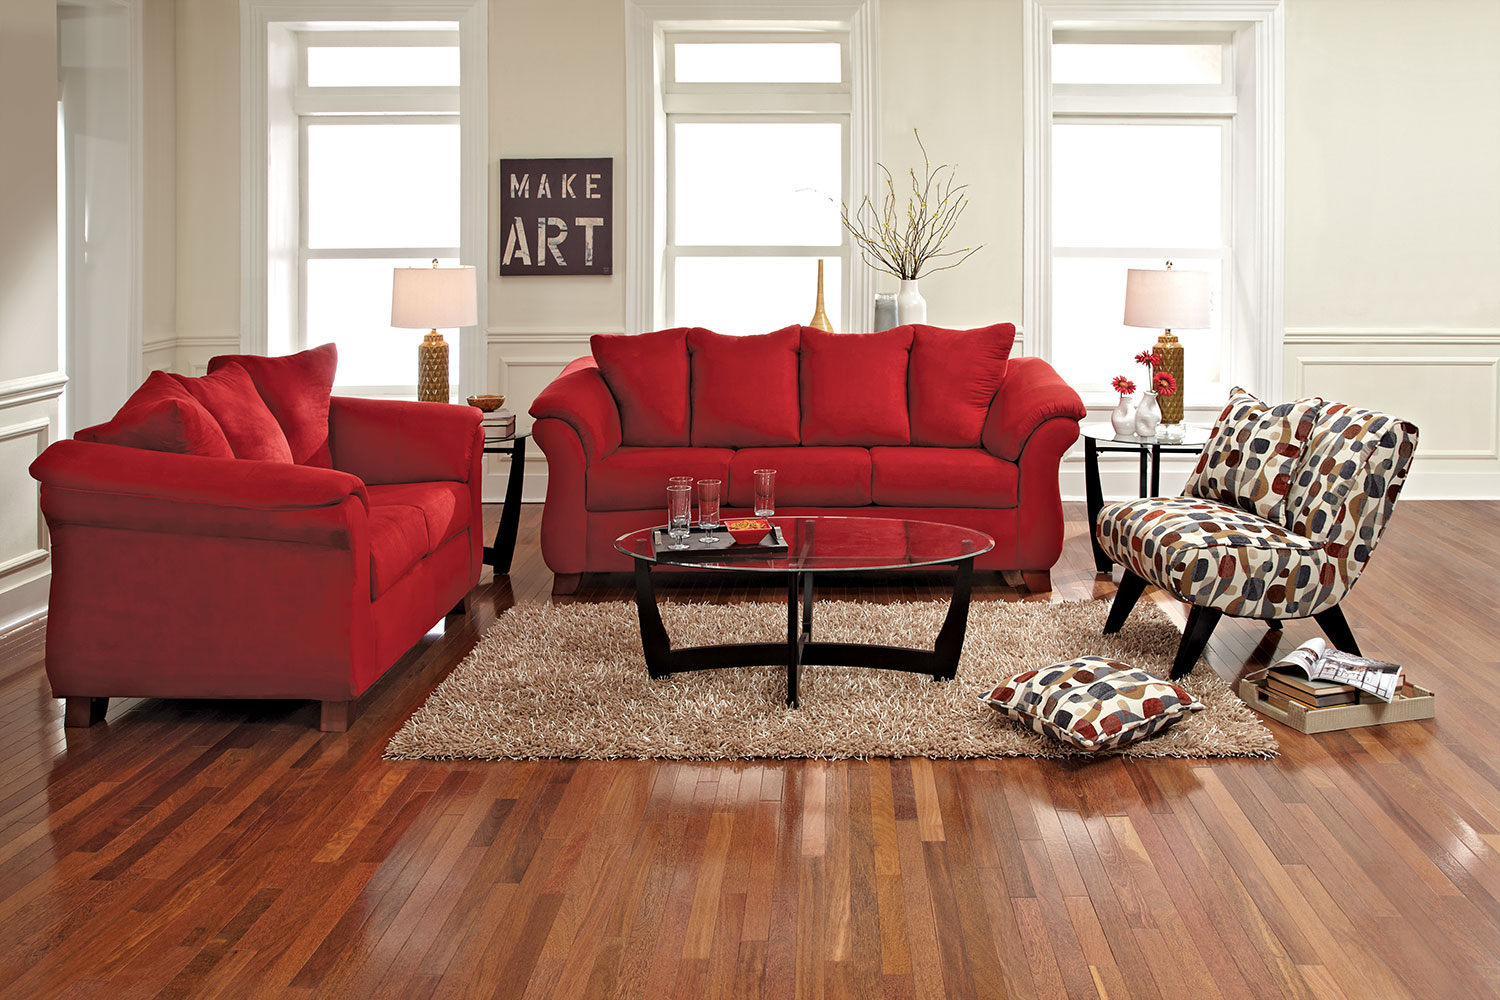 Living room furniture adrian sofa hover touch to zoom click to change image